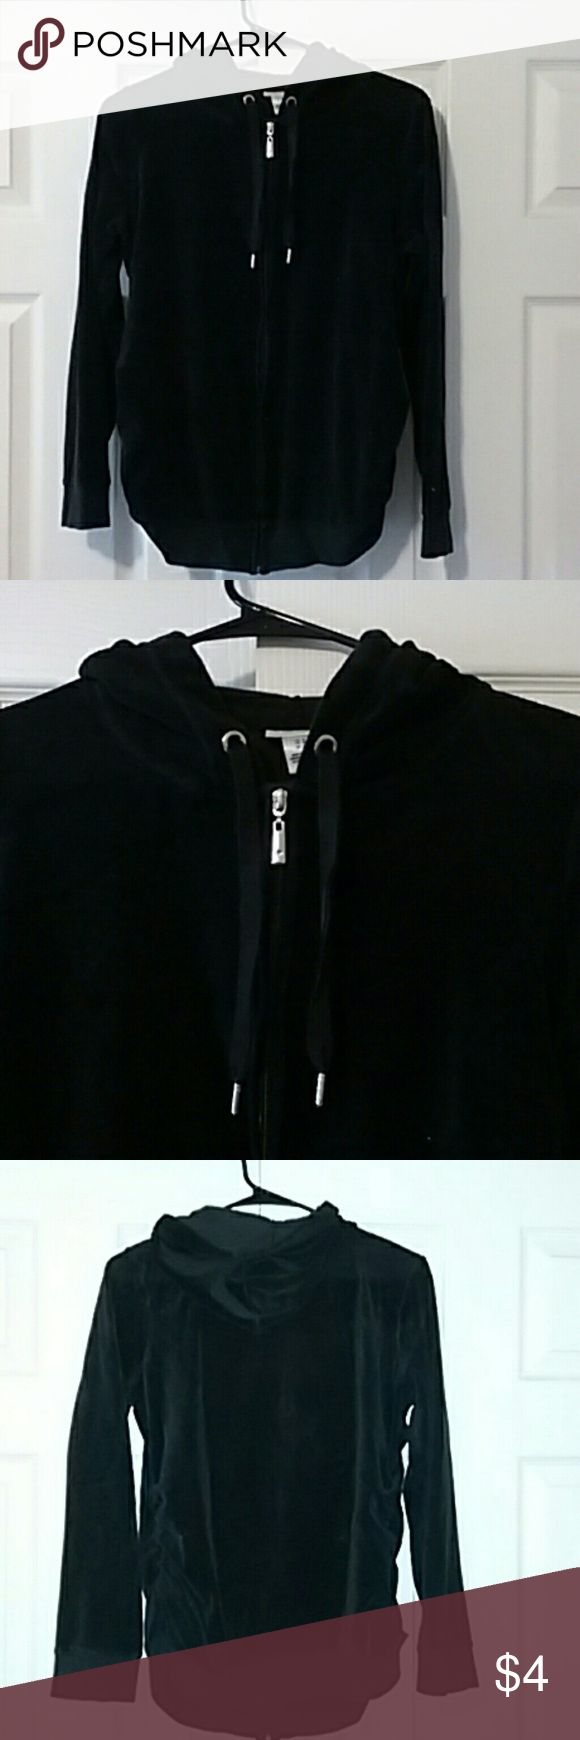 Price to sell!!! Black velour maternity jacket Motherhood Maternity zip up hoodie in a black velour material. Gently used! Very comfy and warm! Motherhood Maternity Jackets & Coats